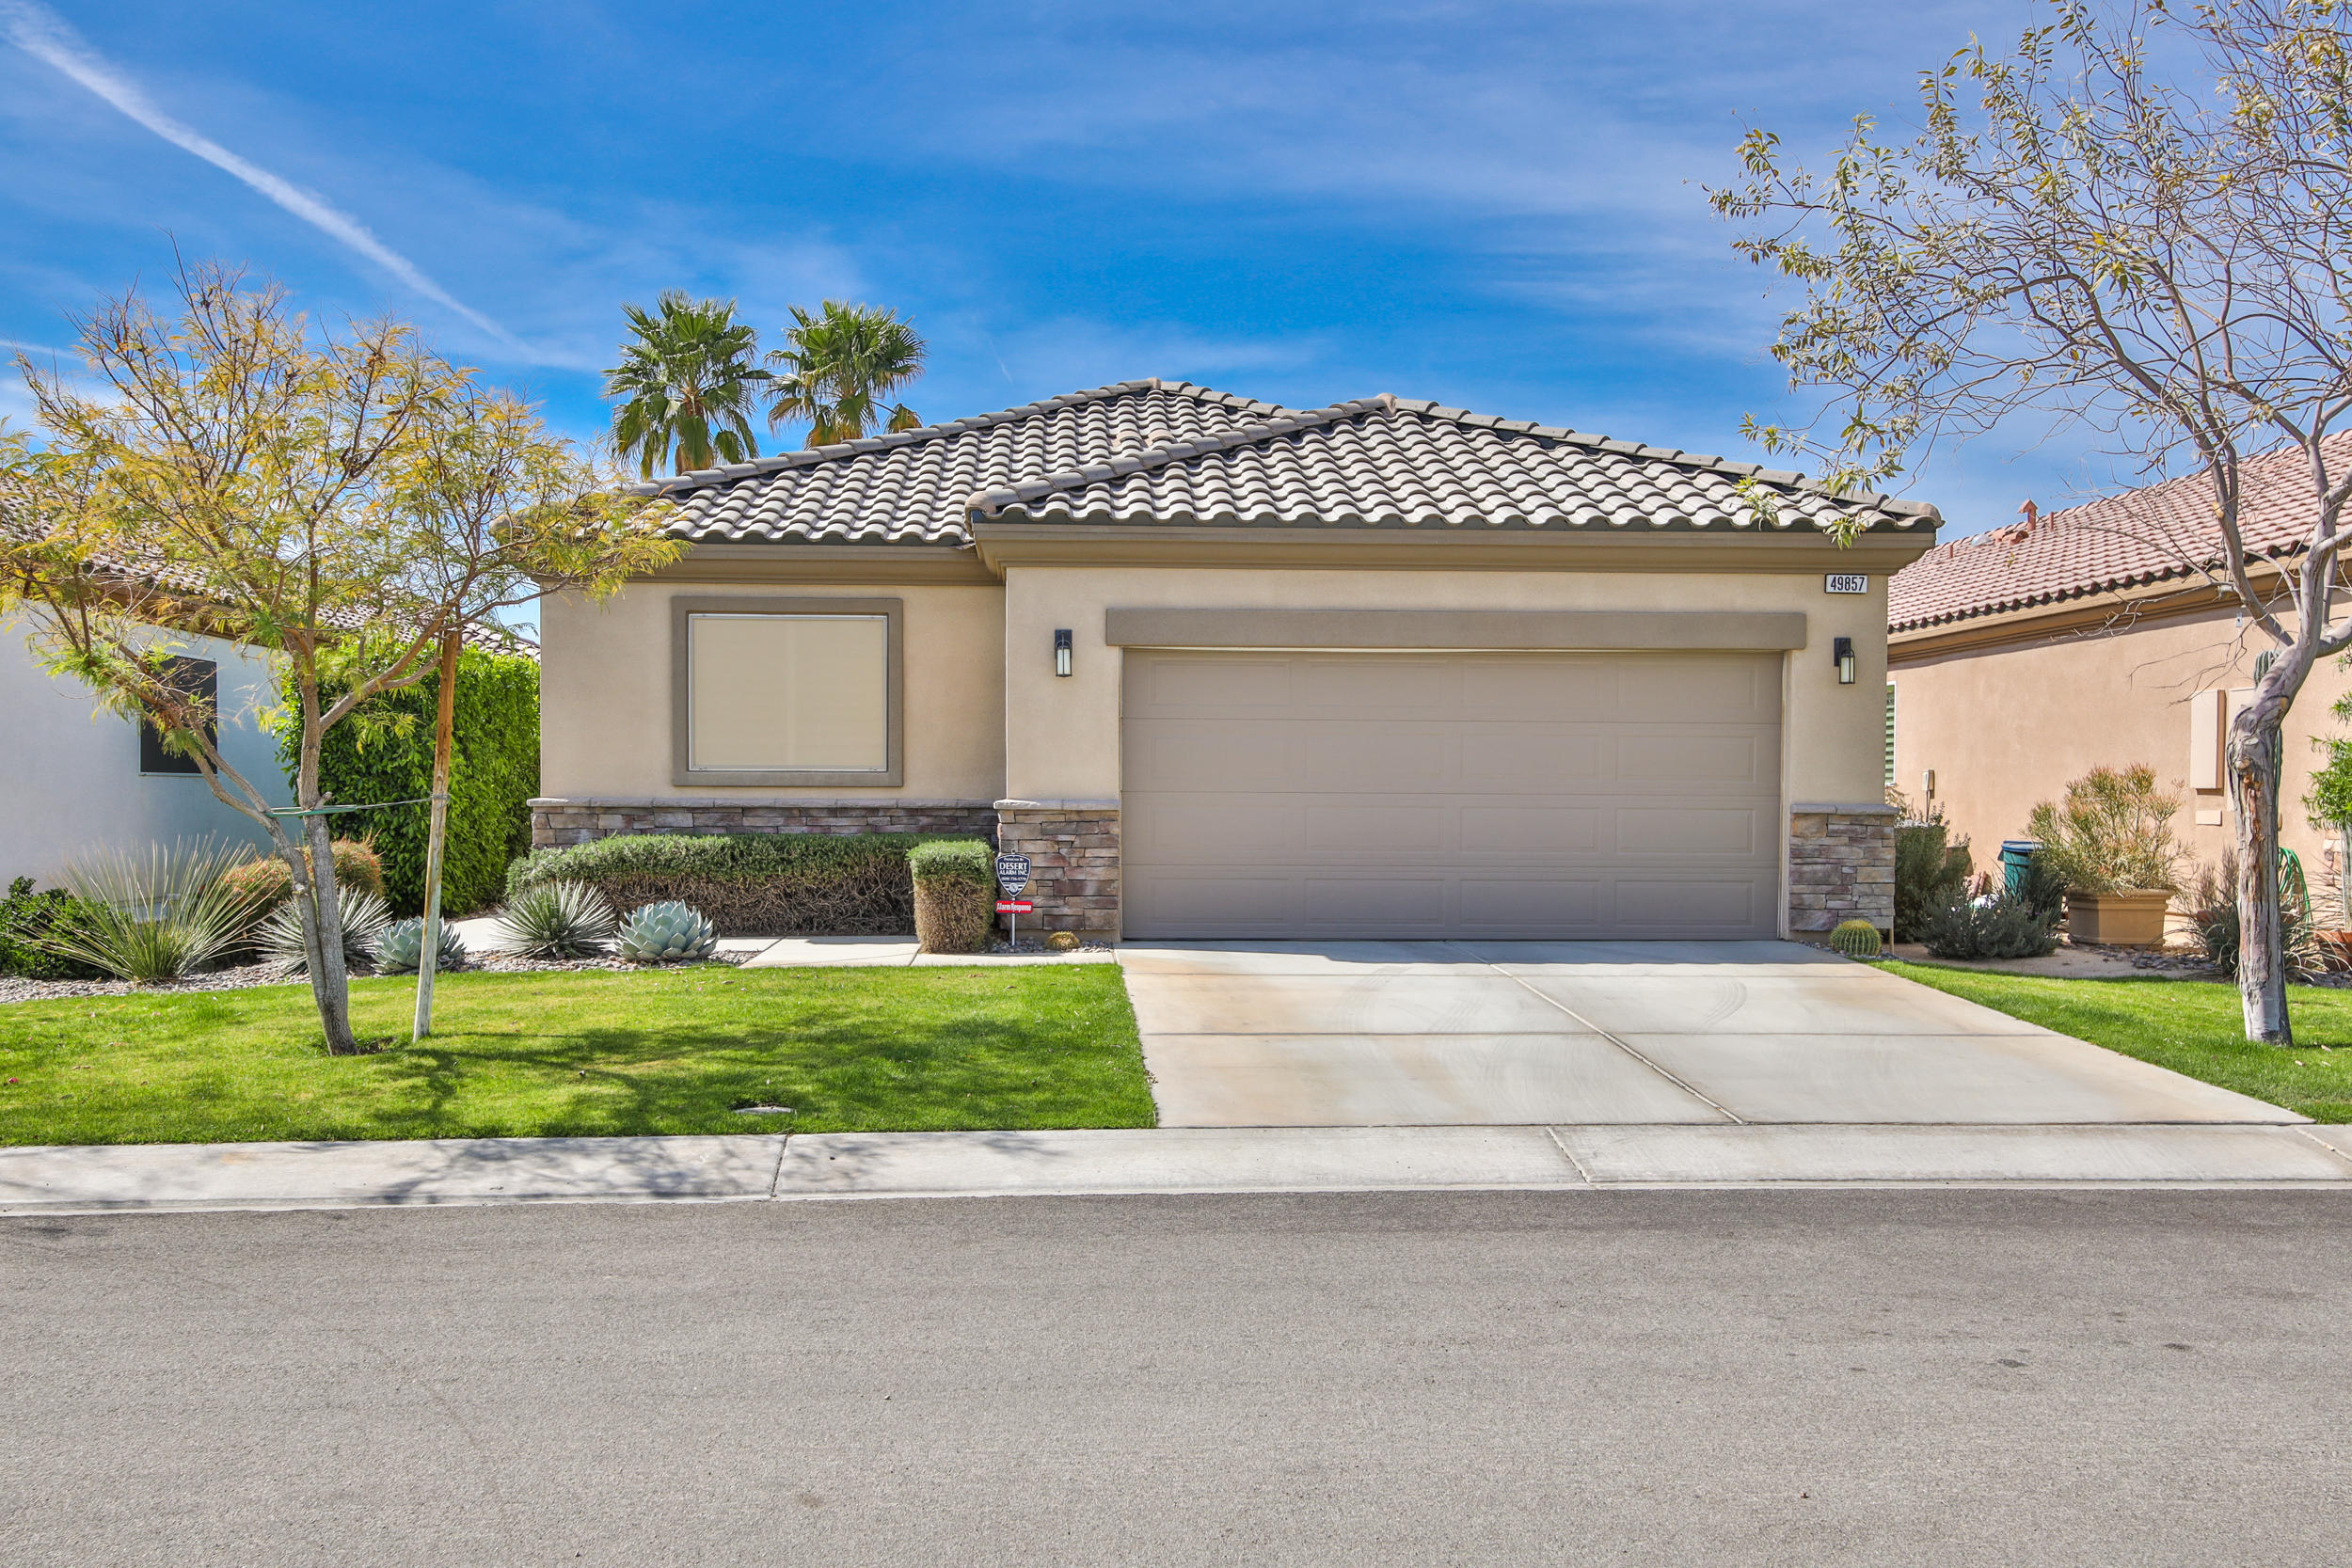 Photo of 49857 Bates Street, Indio, CA 92201